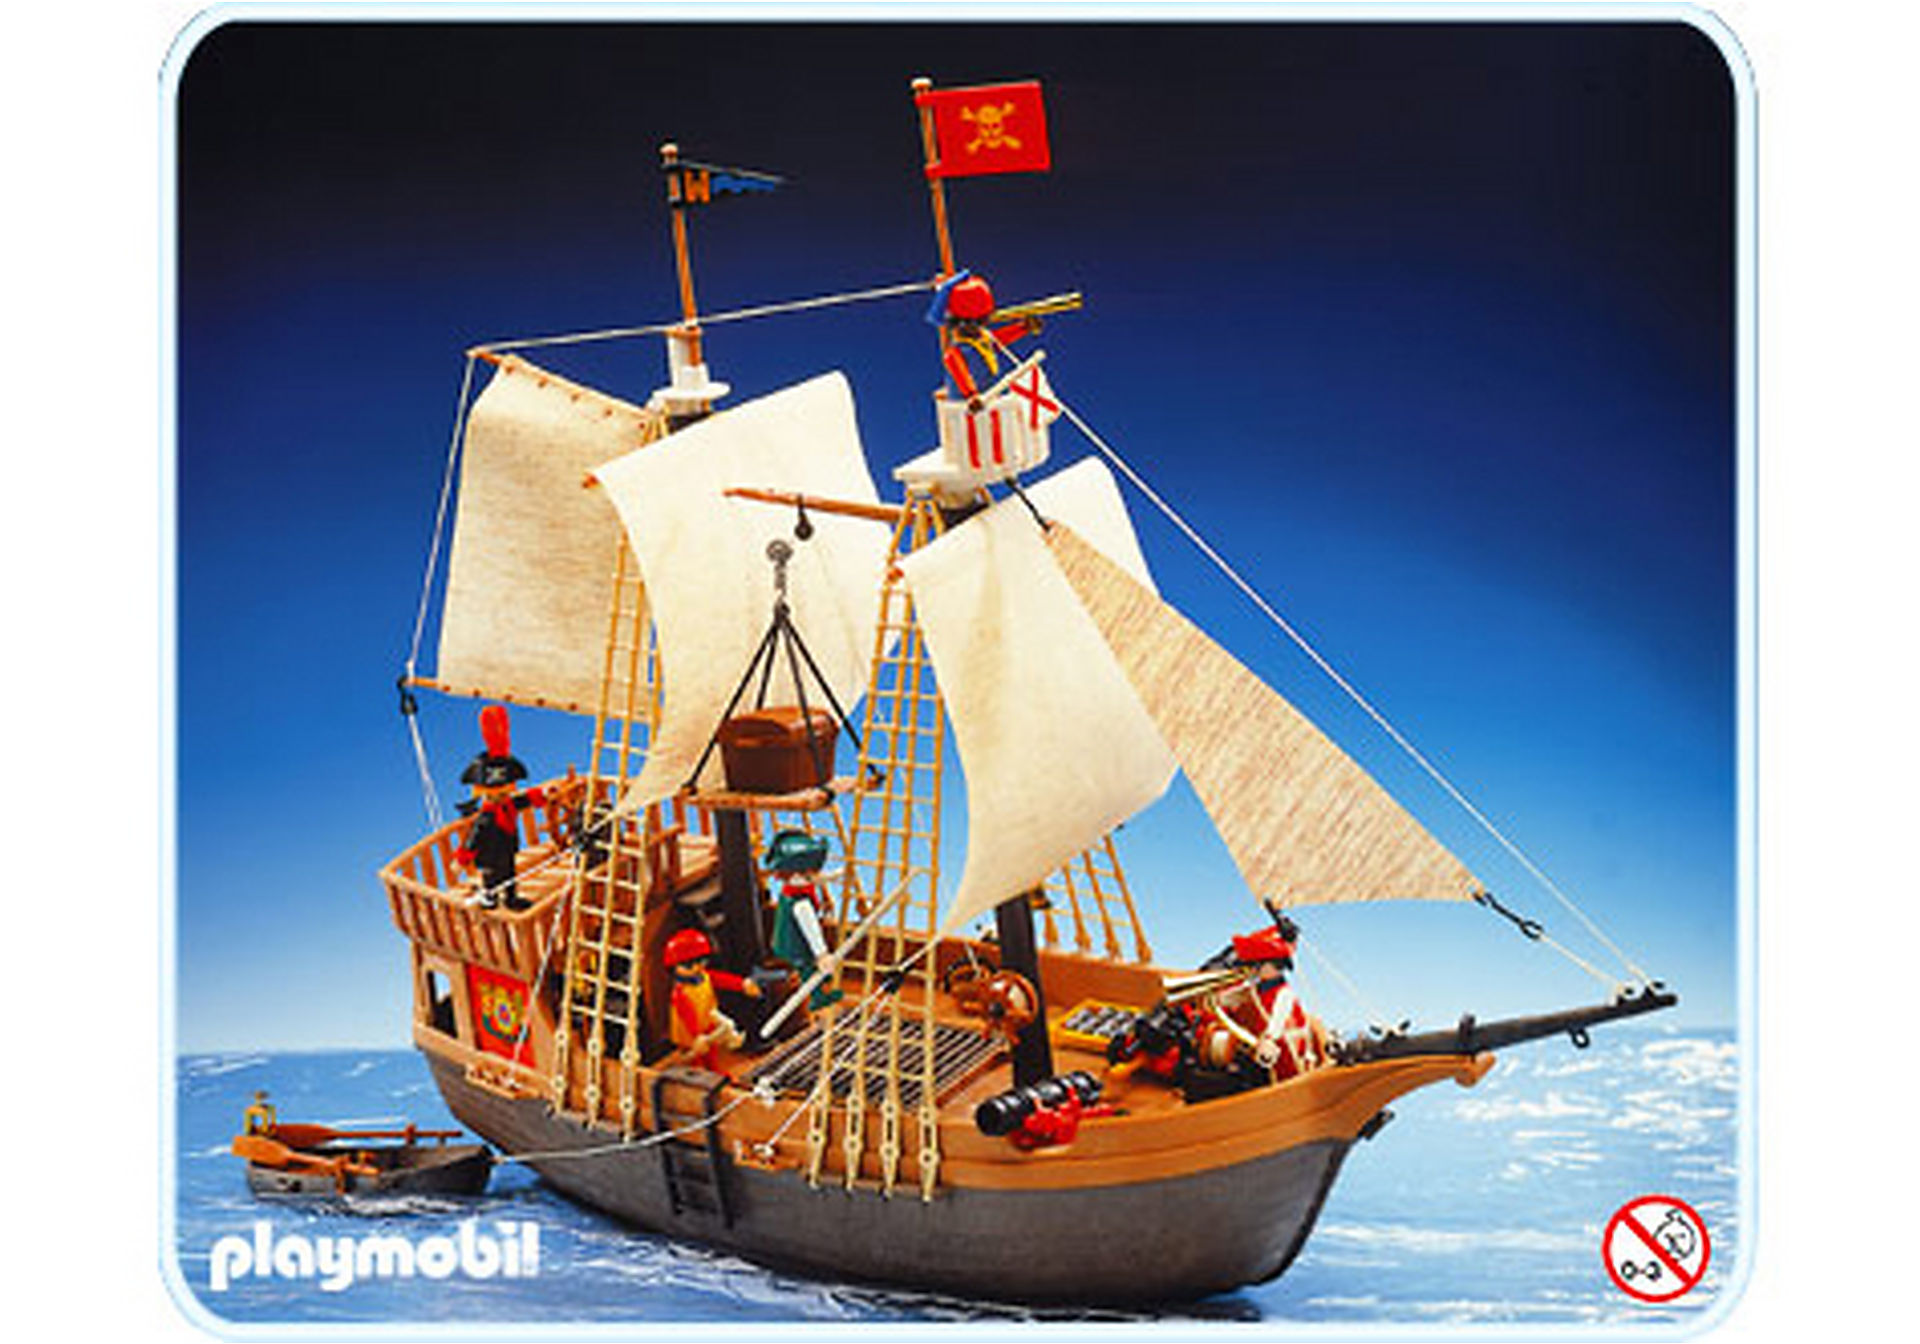 http://media.playmobil.com/i/playmobil/3550-B_product_detail/Piratenschiff